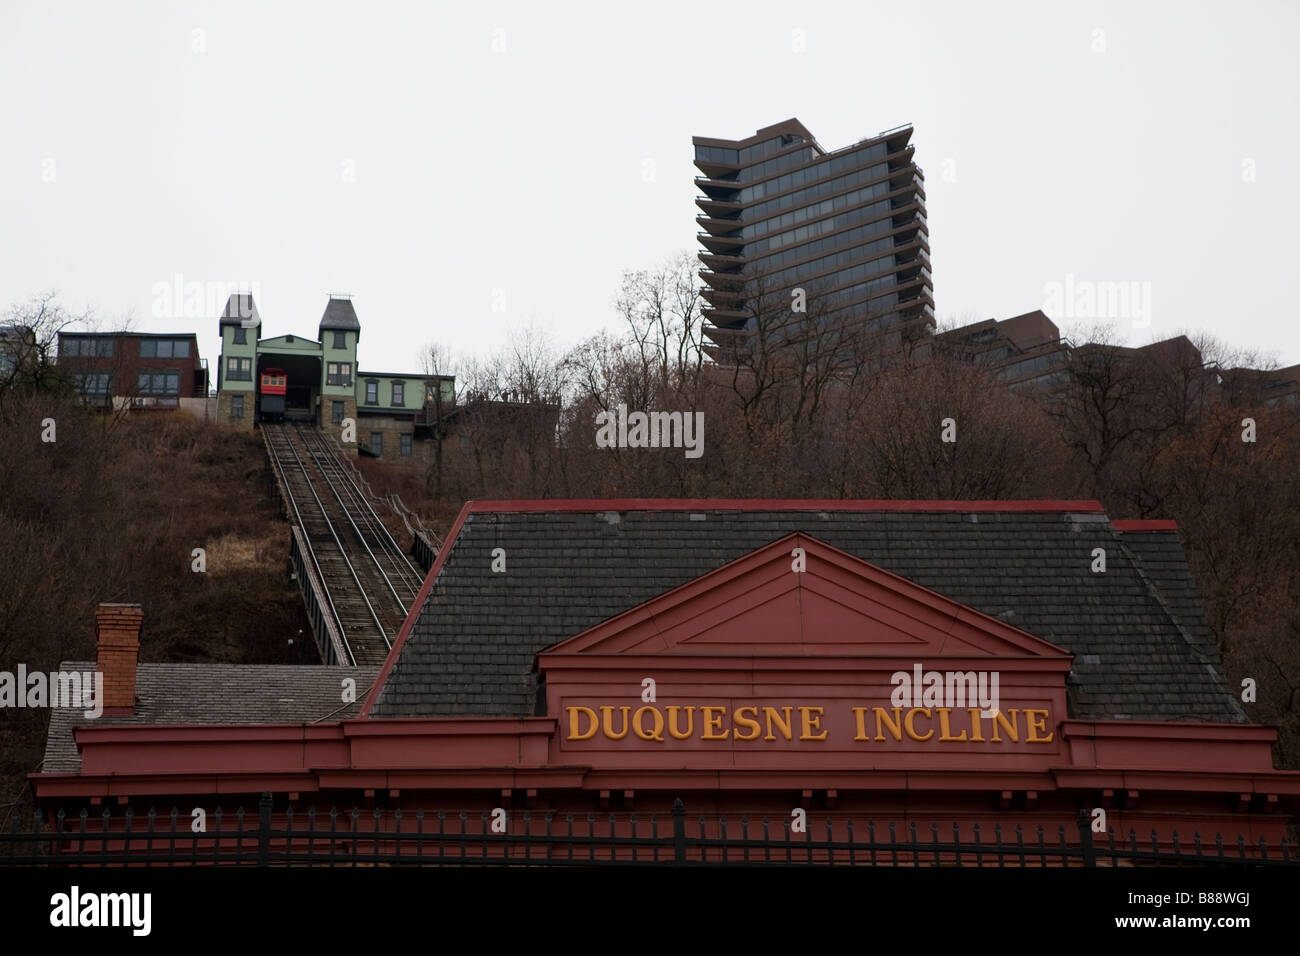 Duquesne Incline Pittsburgh - Stock Image